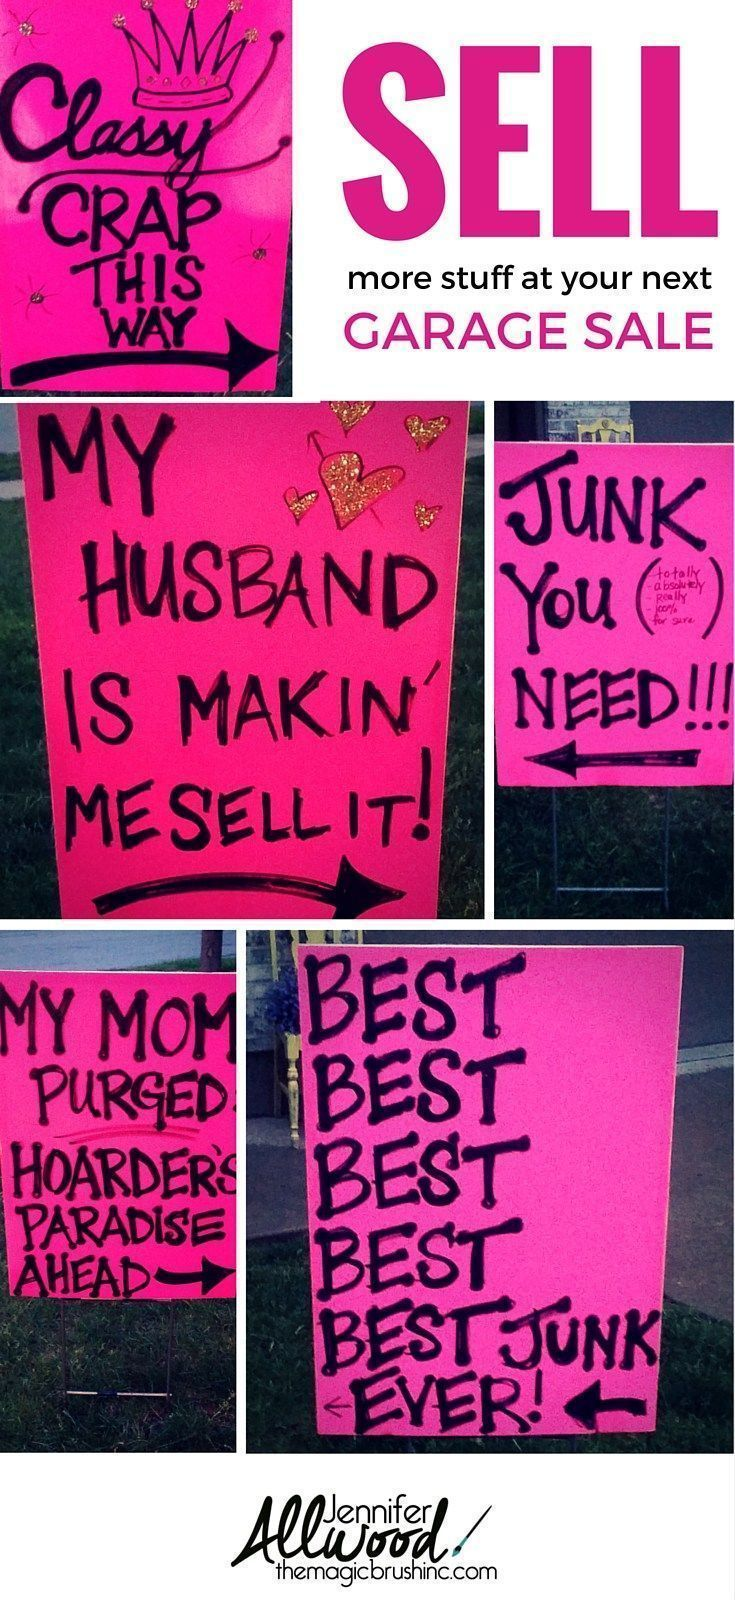 Ideas : How to advertise for a Garage Sale with Clever Signs by Jennifer Allwood  #garagesale #signs